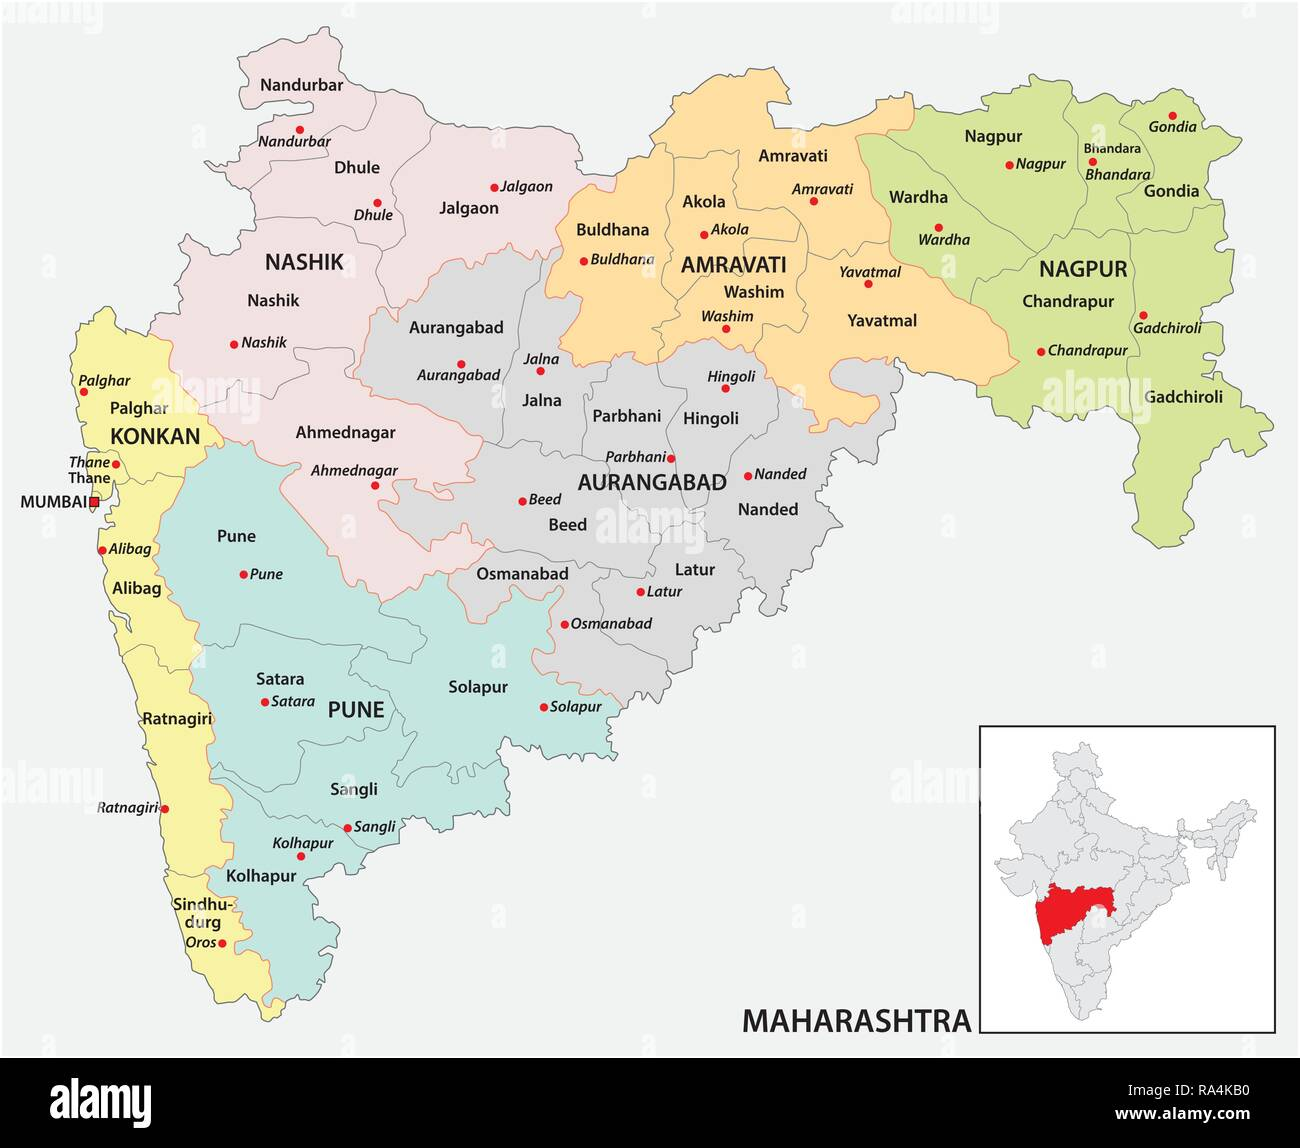 India Political Map Hd on brahmaputra river india map, indian subcontinent physical map, india's physical map, indian lands map, fox indian map, ancient china map, indian river map, clear indian map, ancient india map, buddhism in india map, empty indian map, blank outline physical maps,